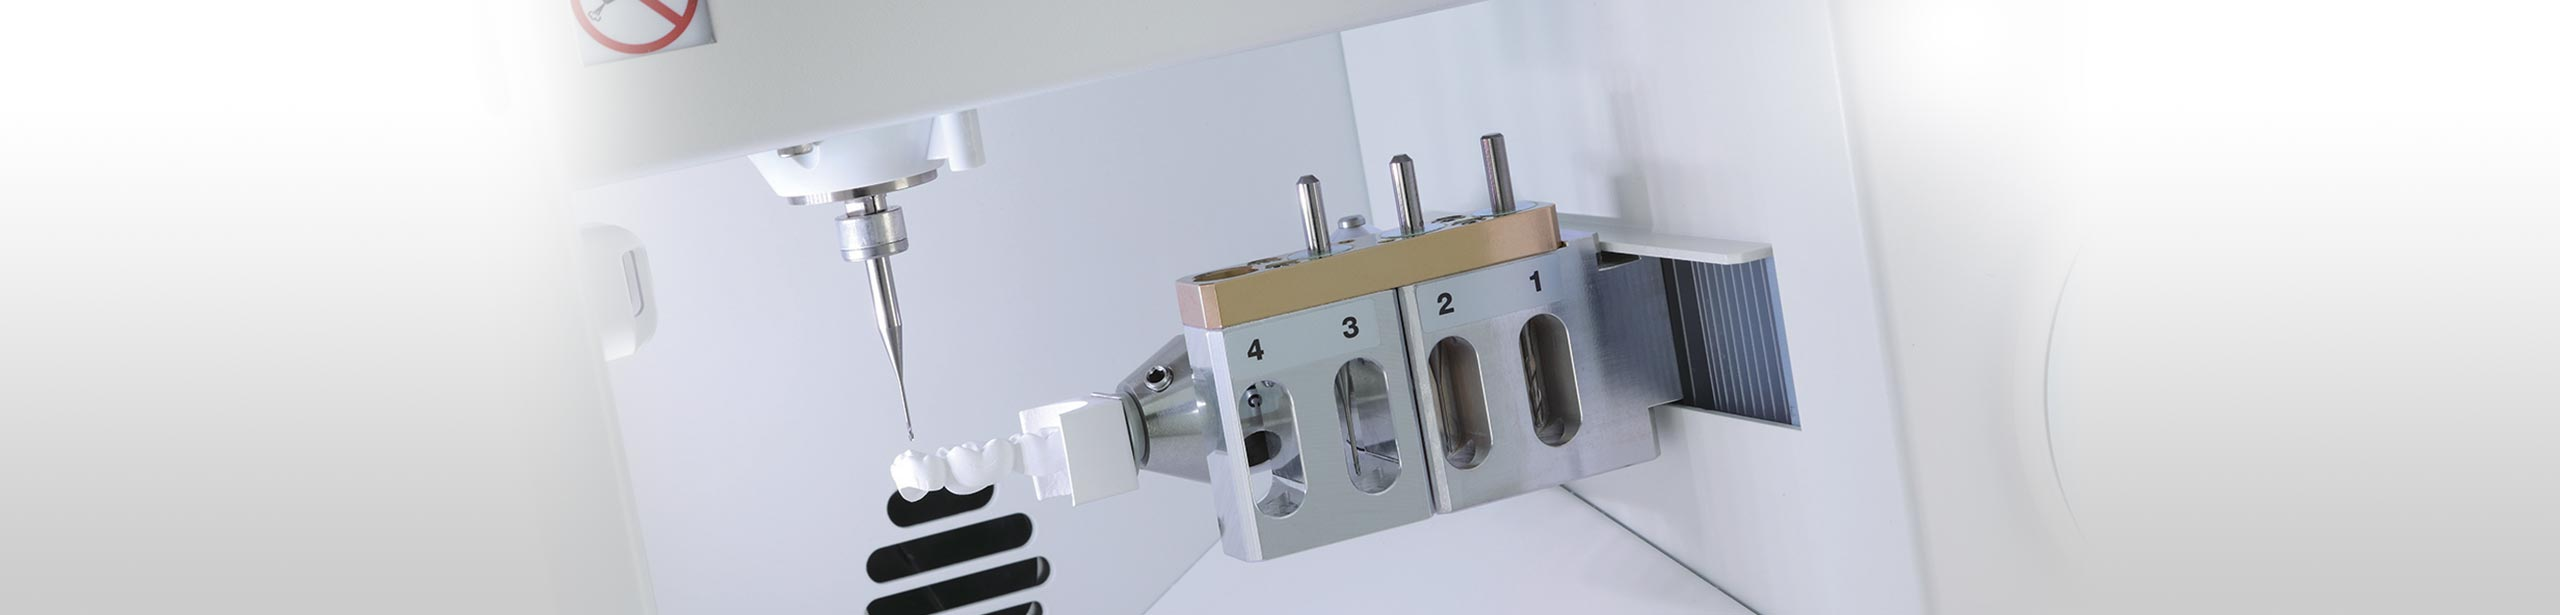 Roland DWX-4 user-friendly desktop compact dental milling system